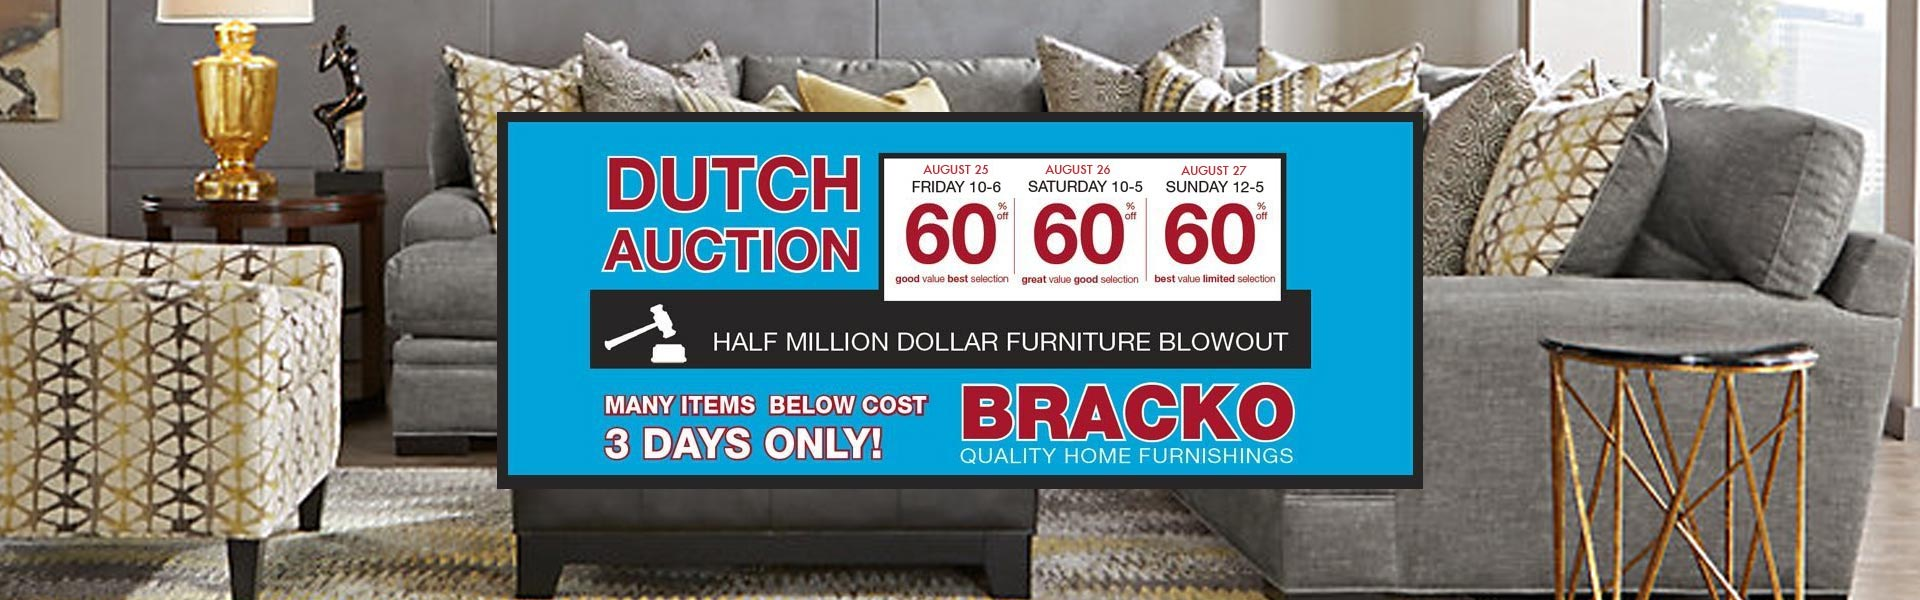 Dutch Auction Header